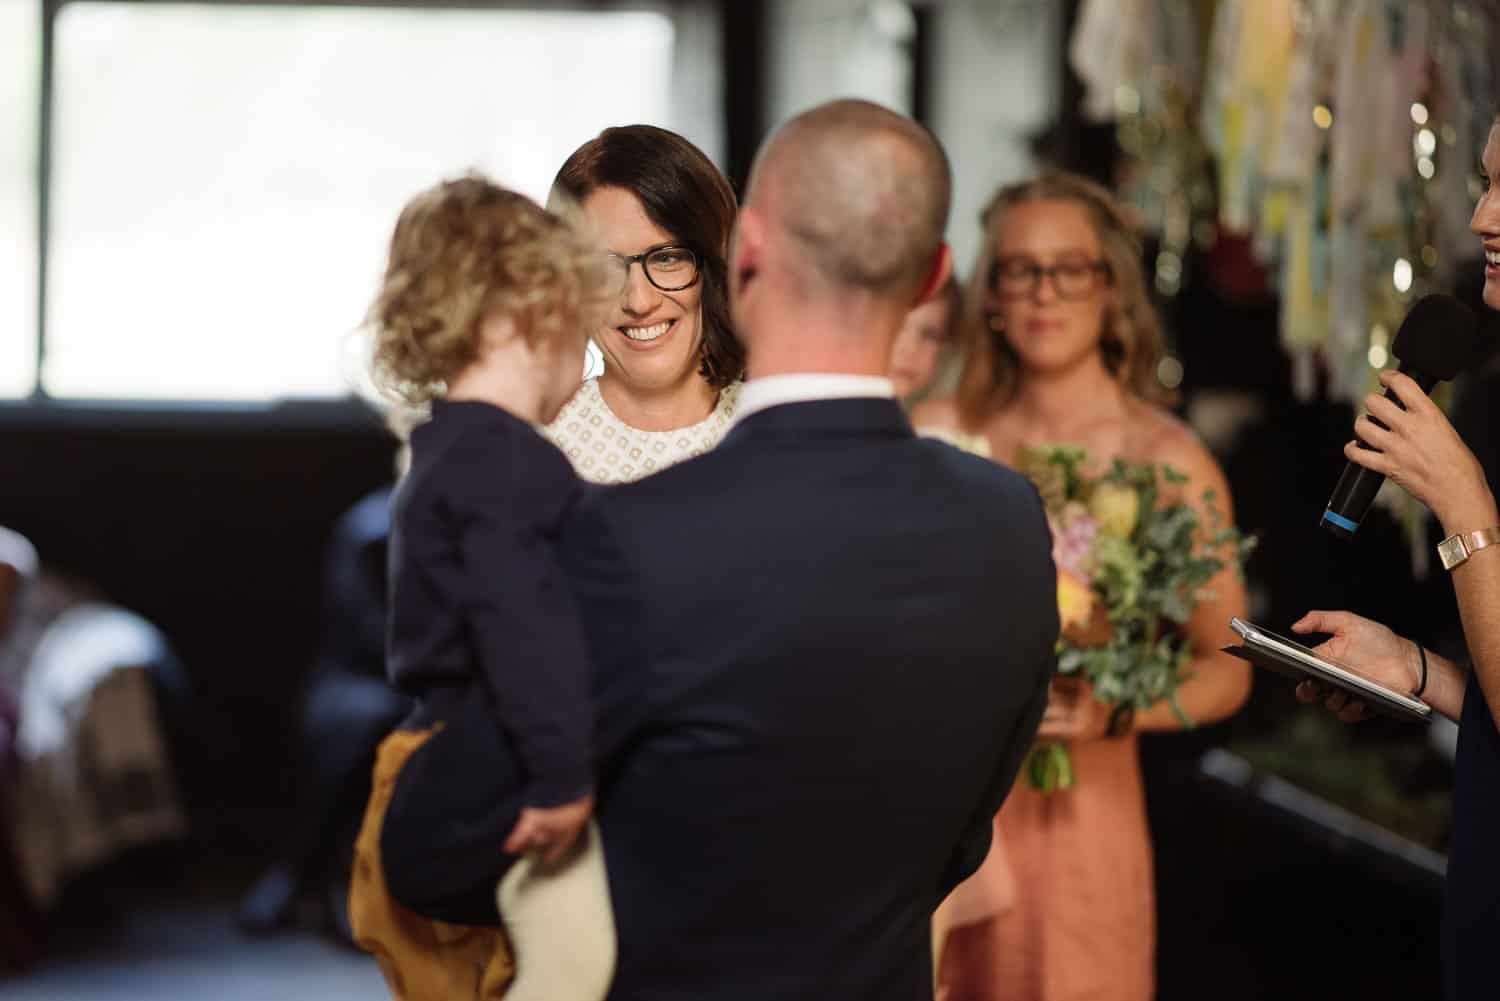 Bride looks at groom and her daughter